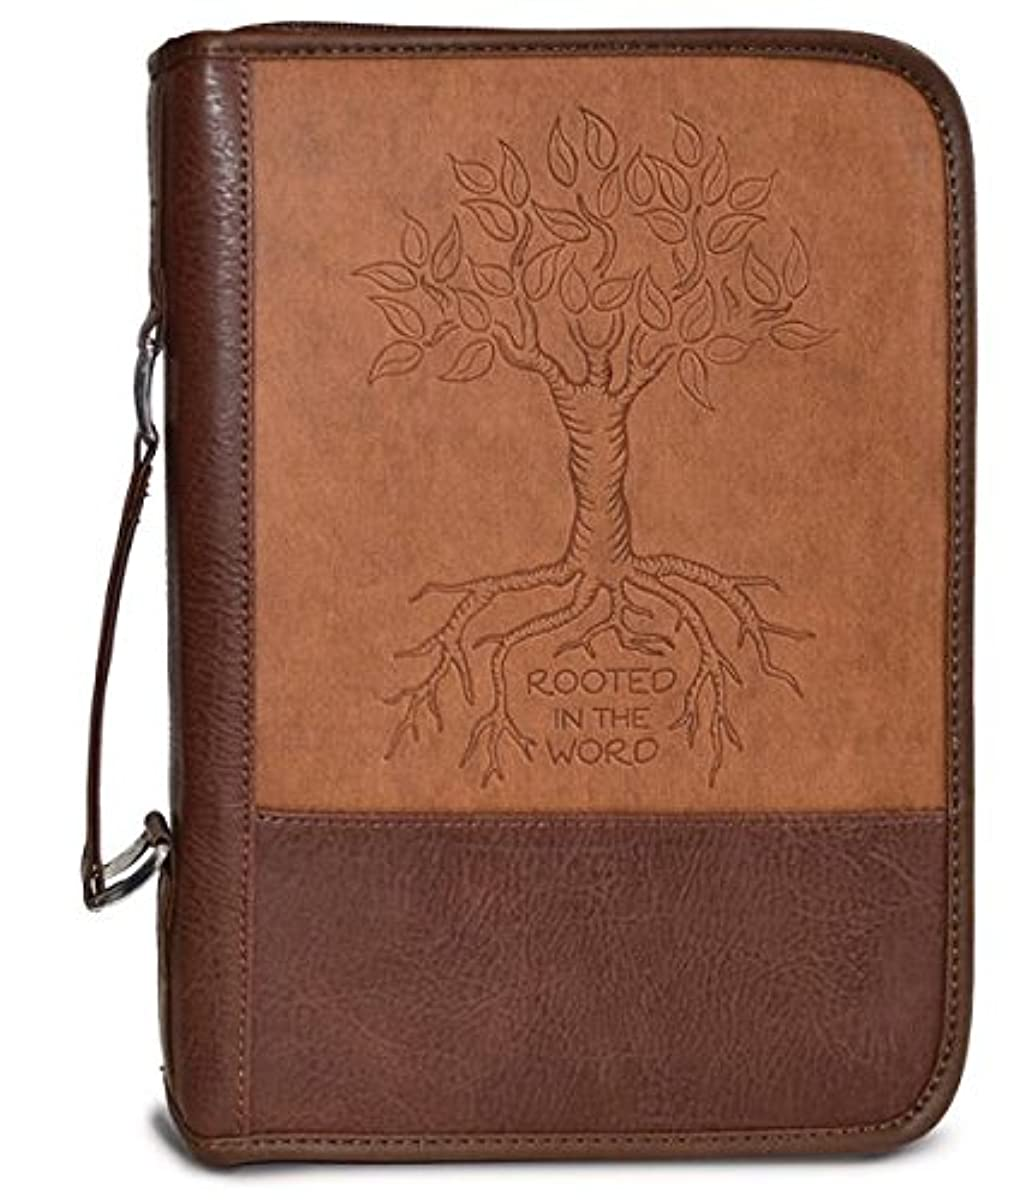 Divinity Boutique Heat Stamp Brown - Rooted L Bible Cover